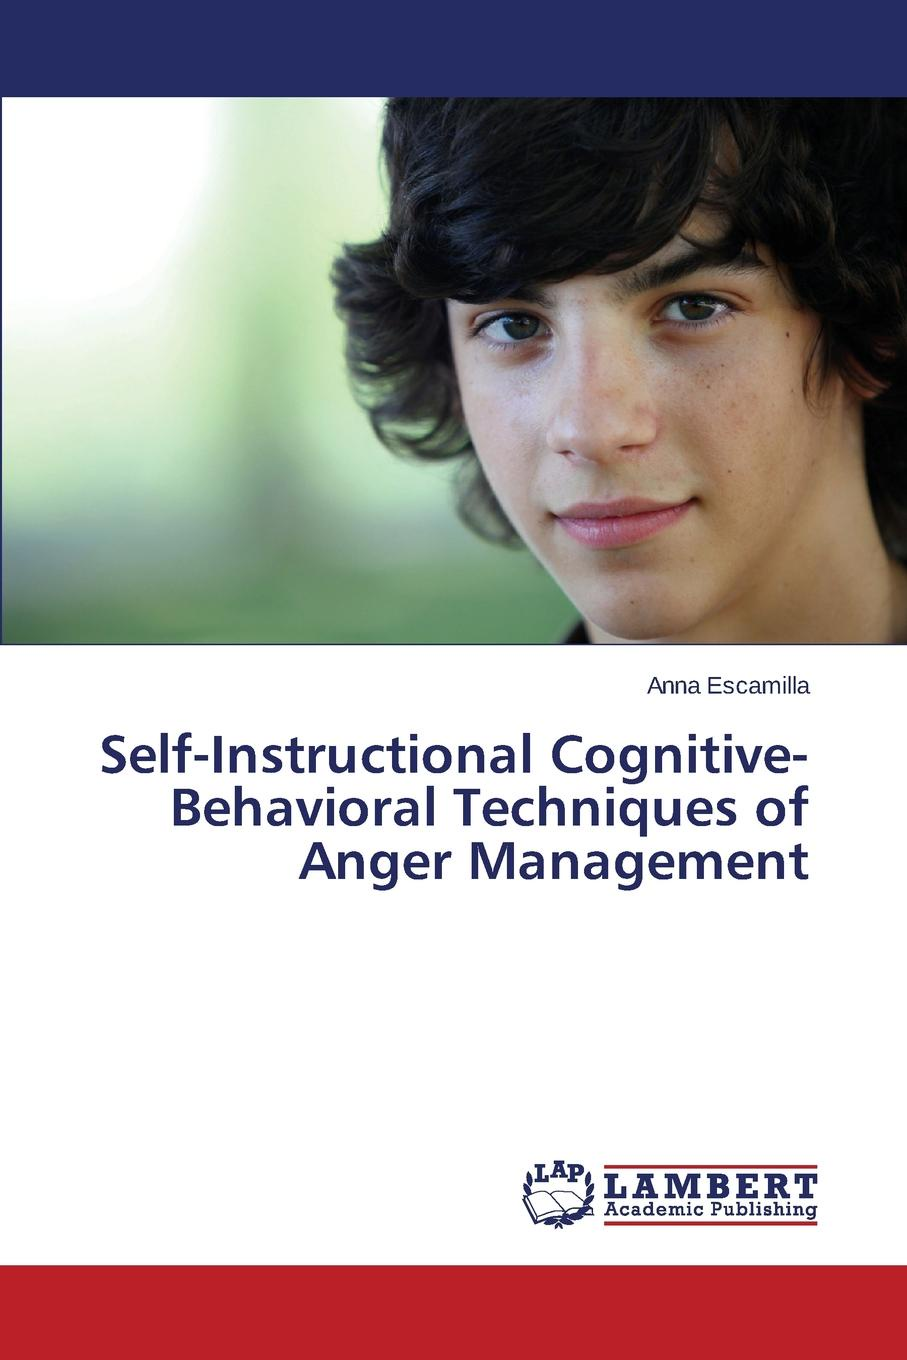 цены Escamilla Anna Self-Instructional Cognitive-Behavioral Techniques of Anger Management